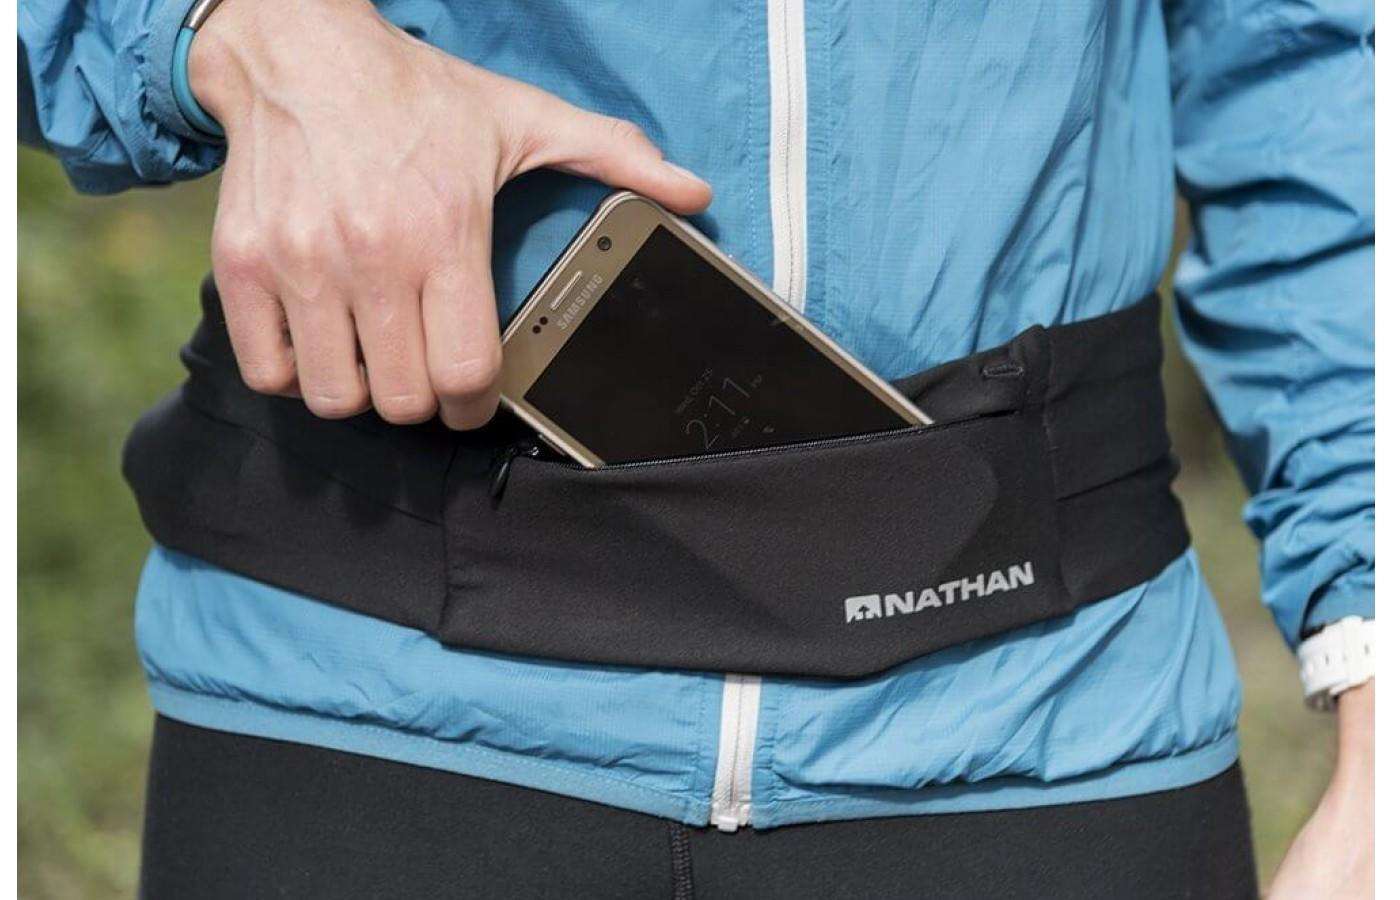 The Nathan Zipster Belt can fit up to an iPhone 7 Plus